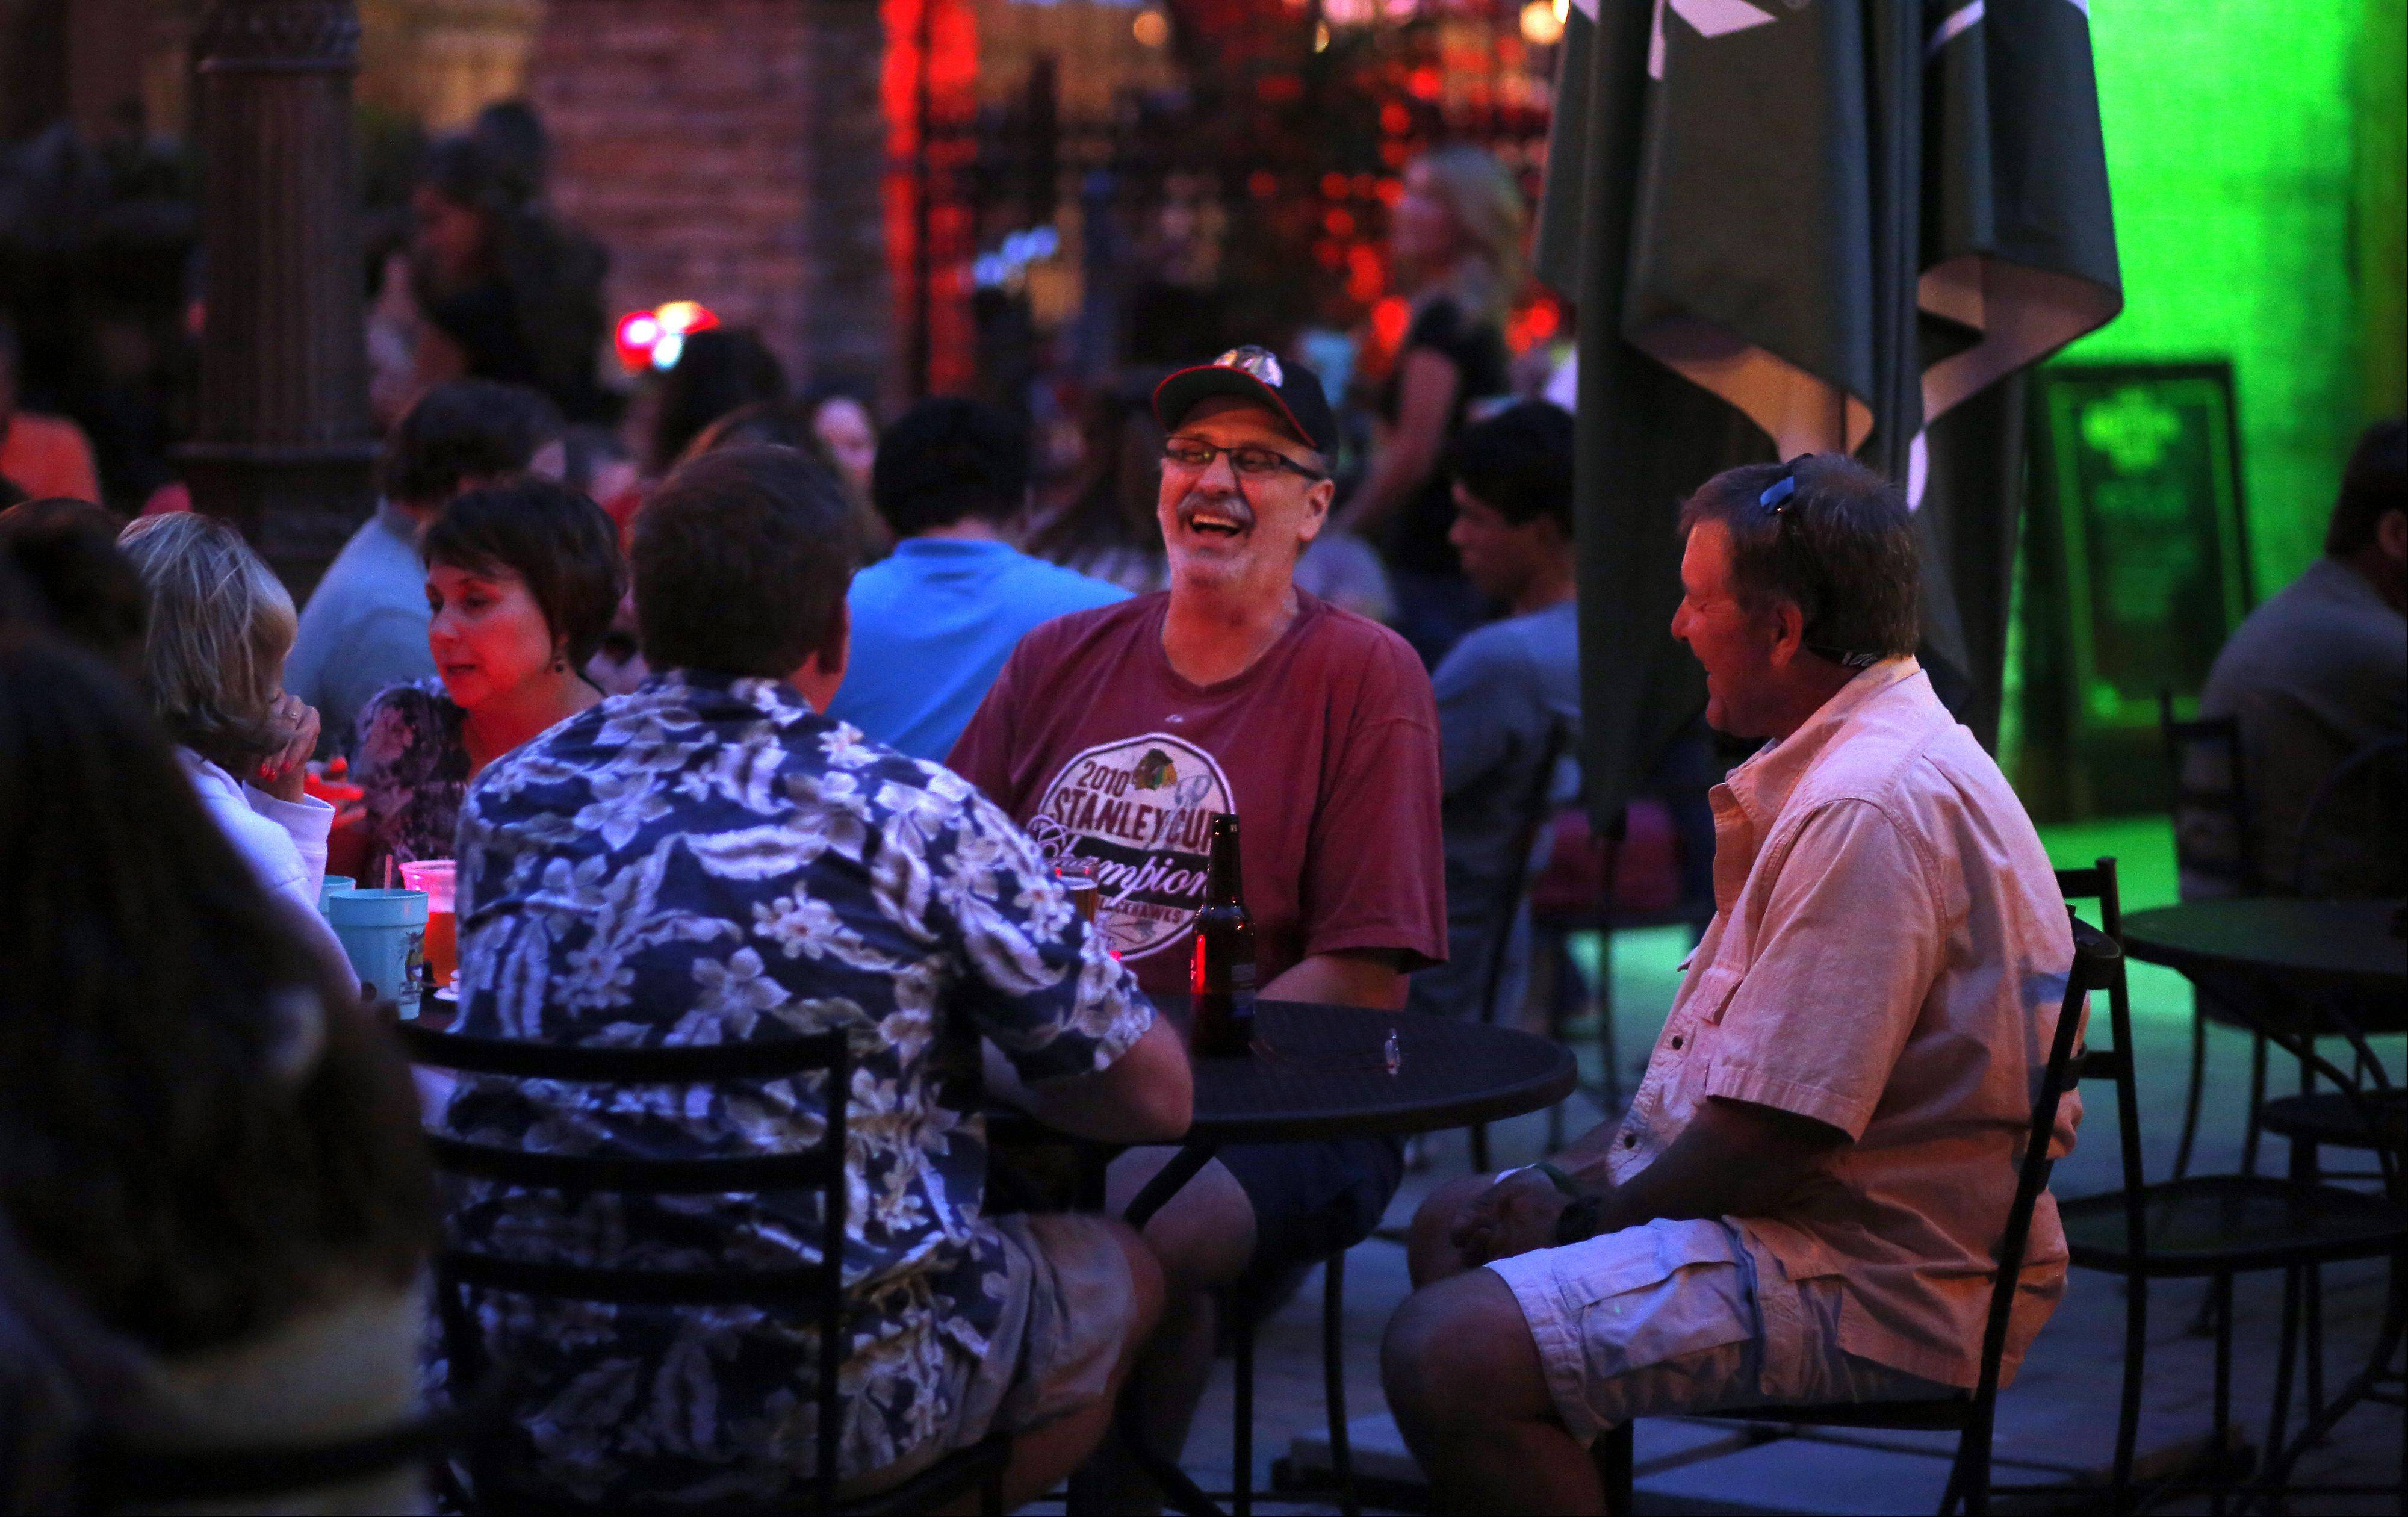 Gary Radaszewski, center, shares a laugh with Jim Lauber, right, on the outdoor deck at Bandito Barney's in East Dundee.